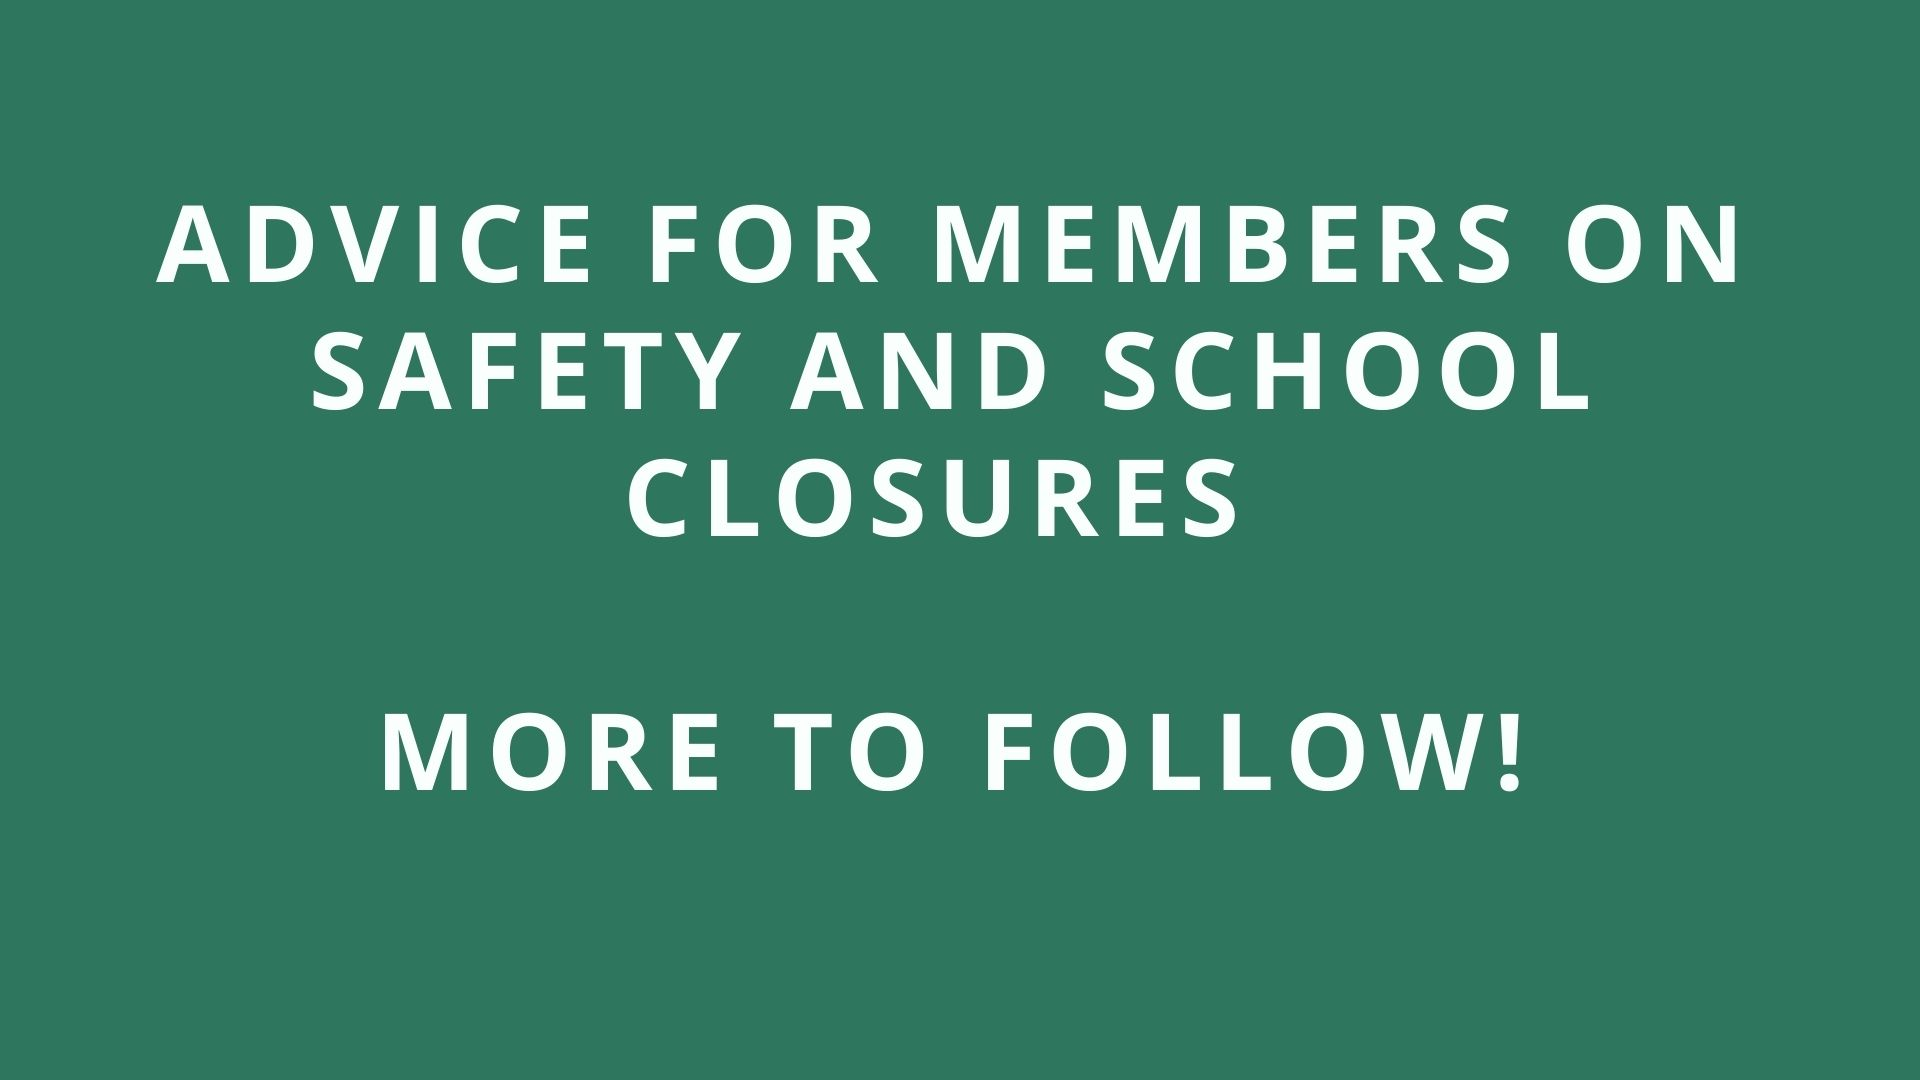 Advice for members on safety and school closures. More to follow!